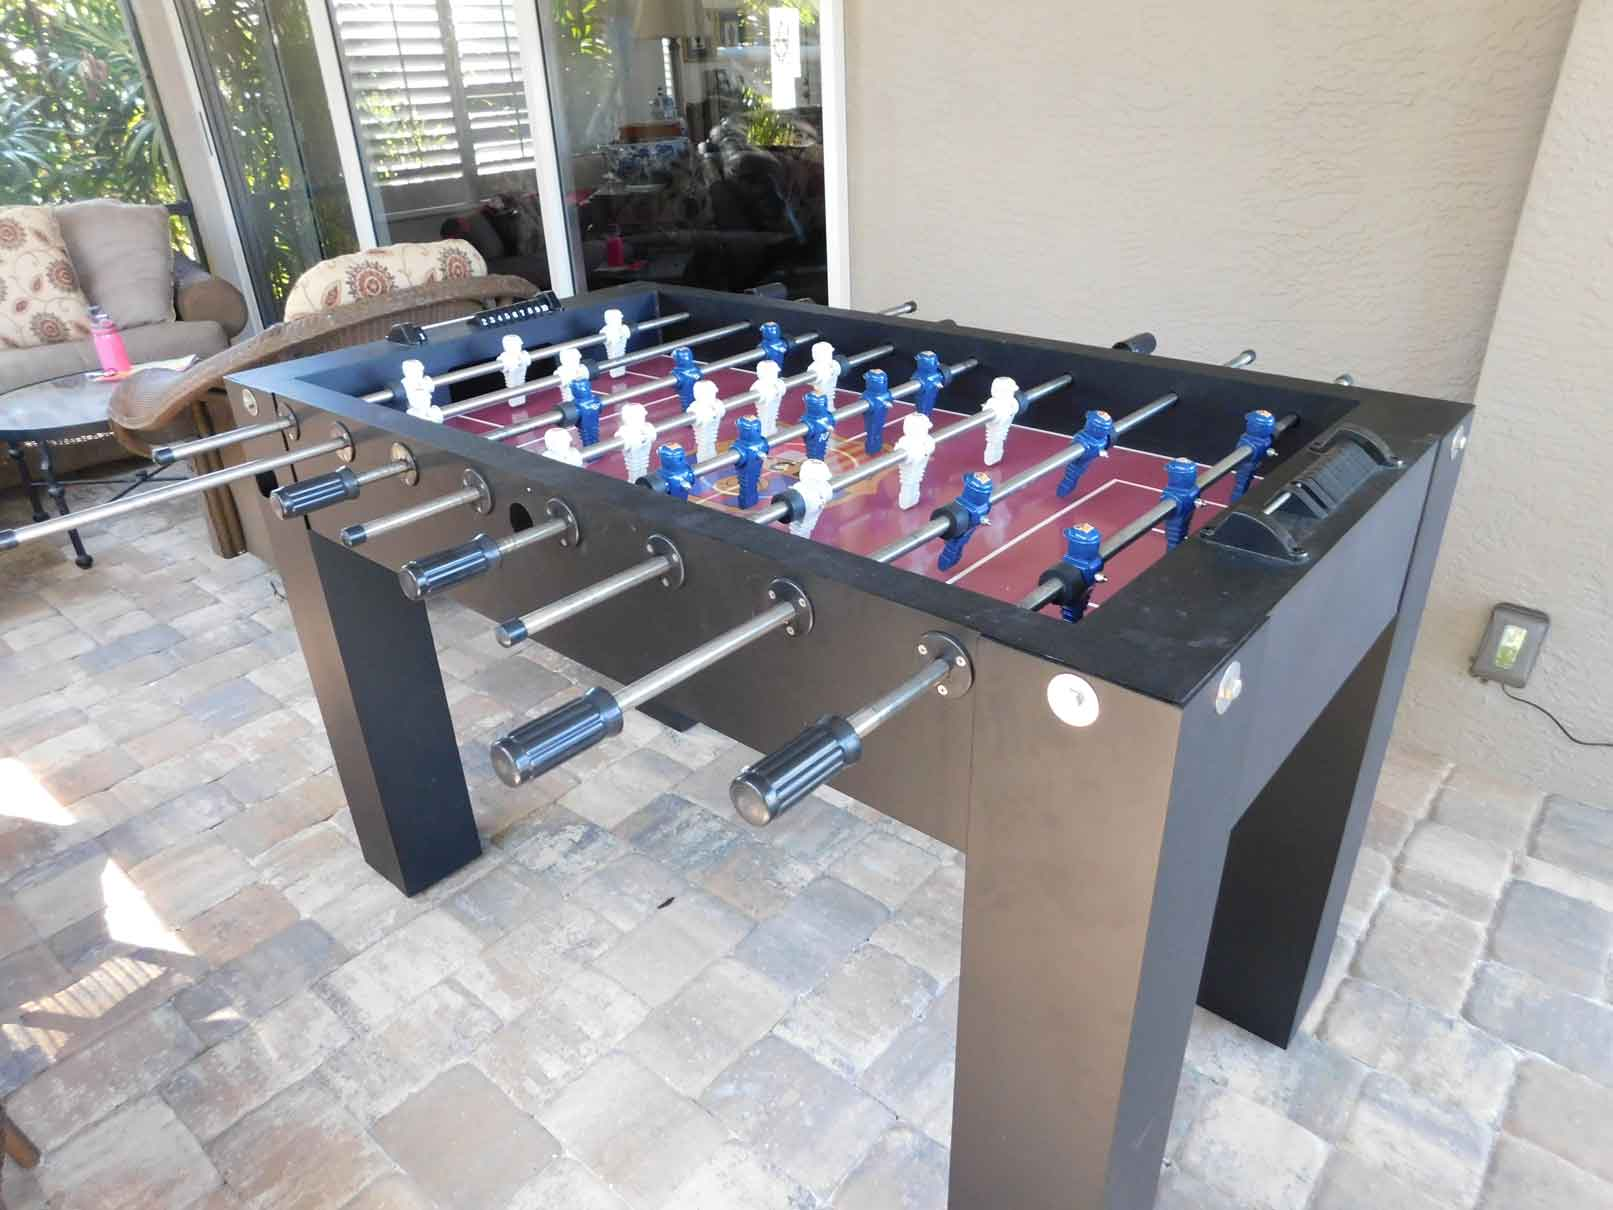 Outdoor foosball game table in Southwest Florida home by R&R Outdoors All Weather Billiards